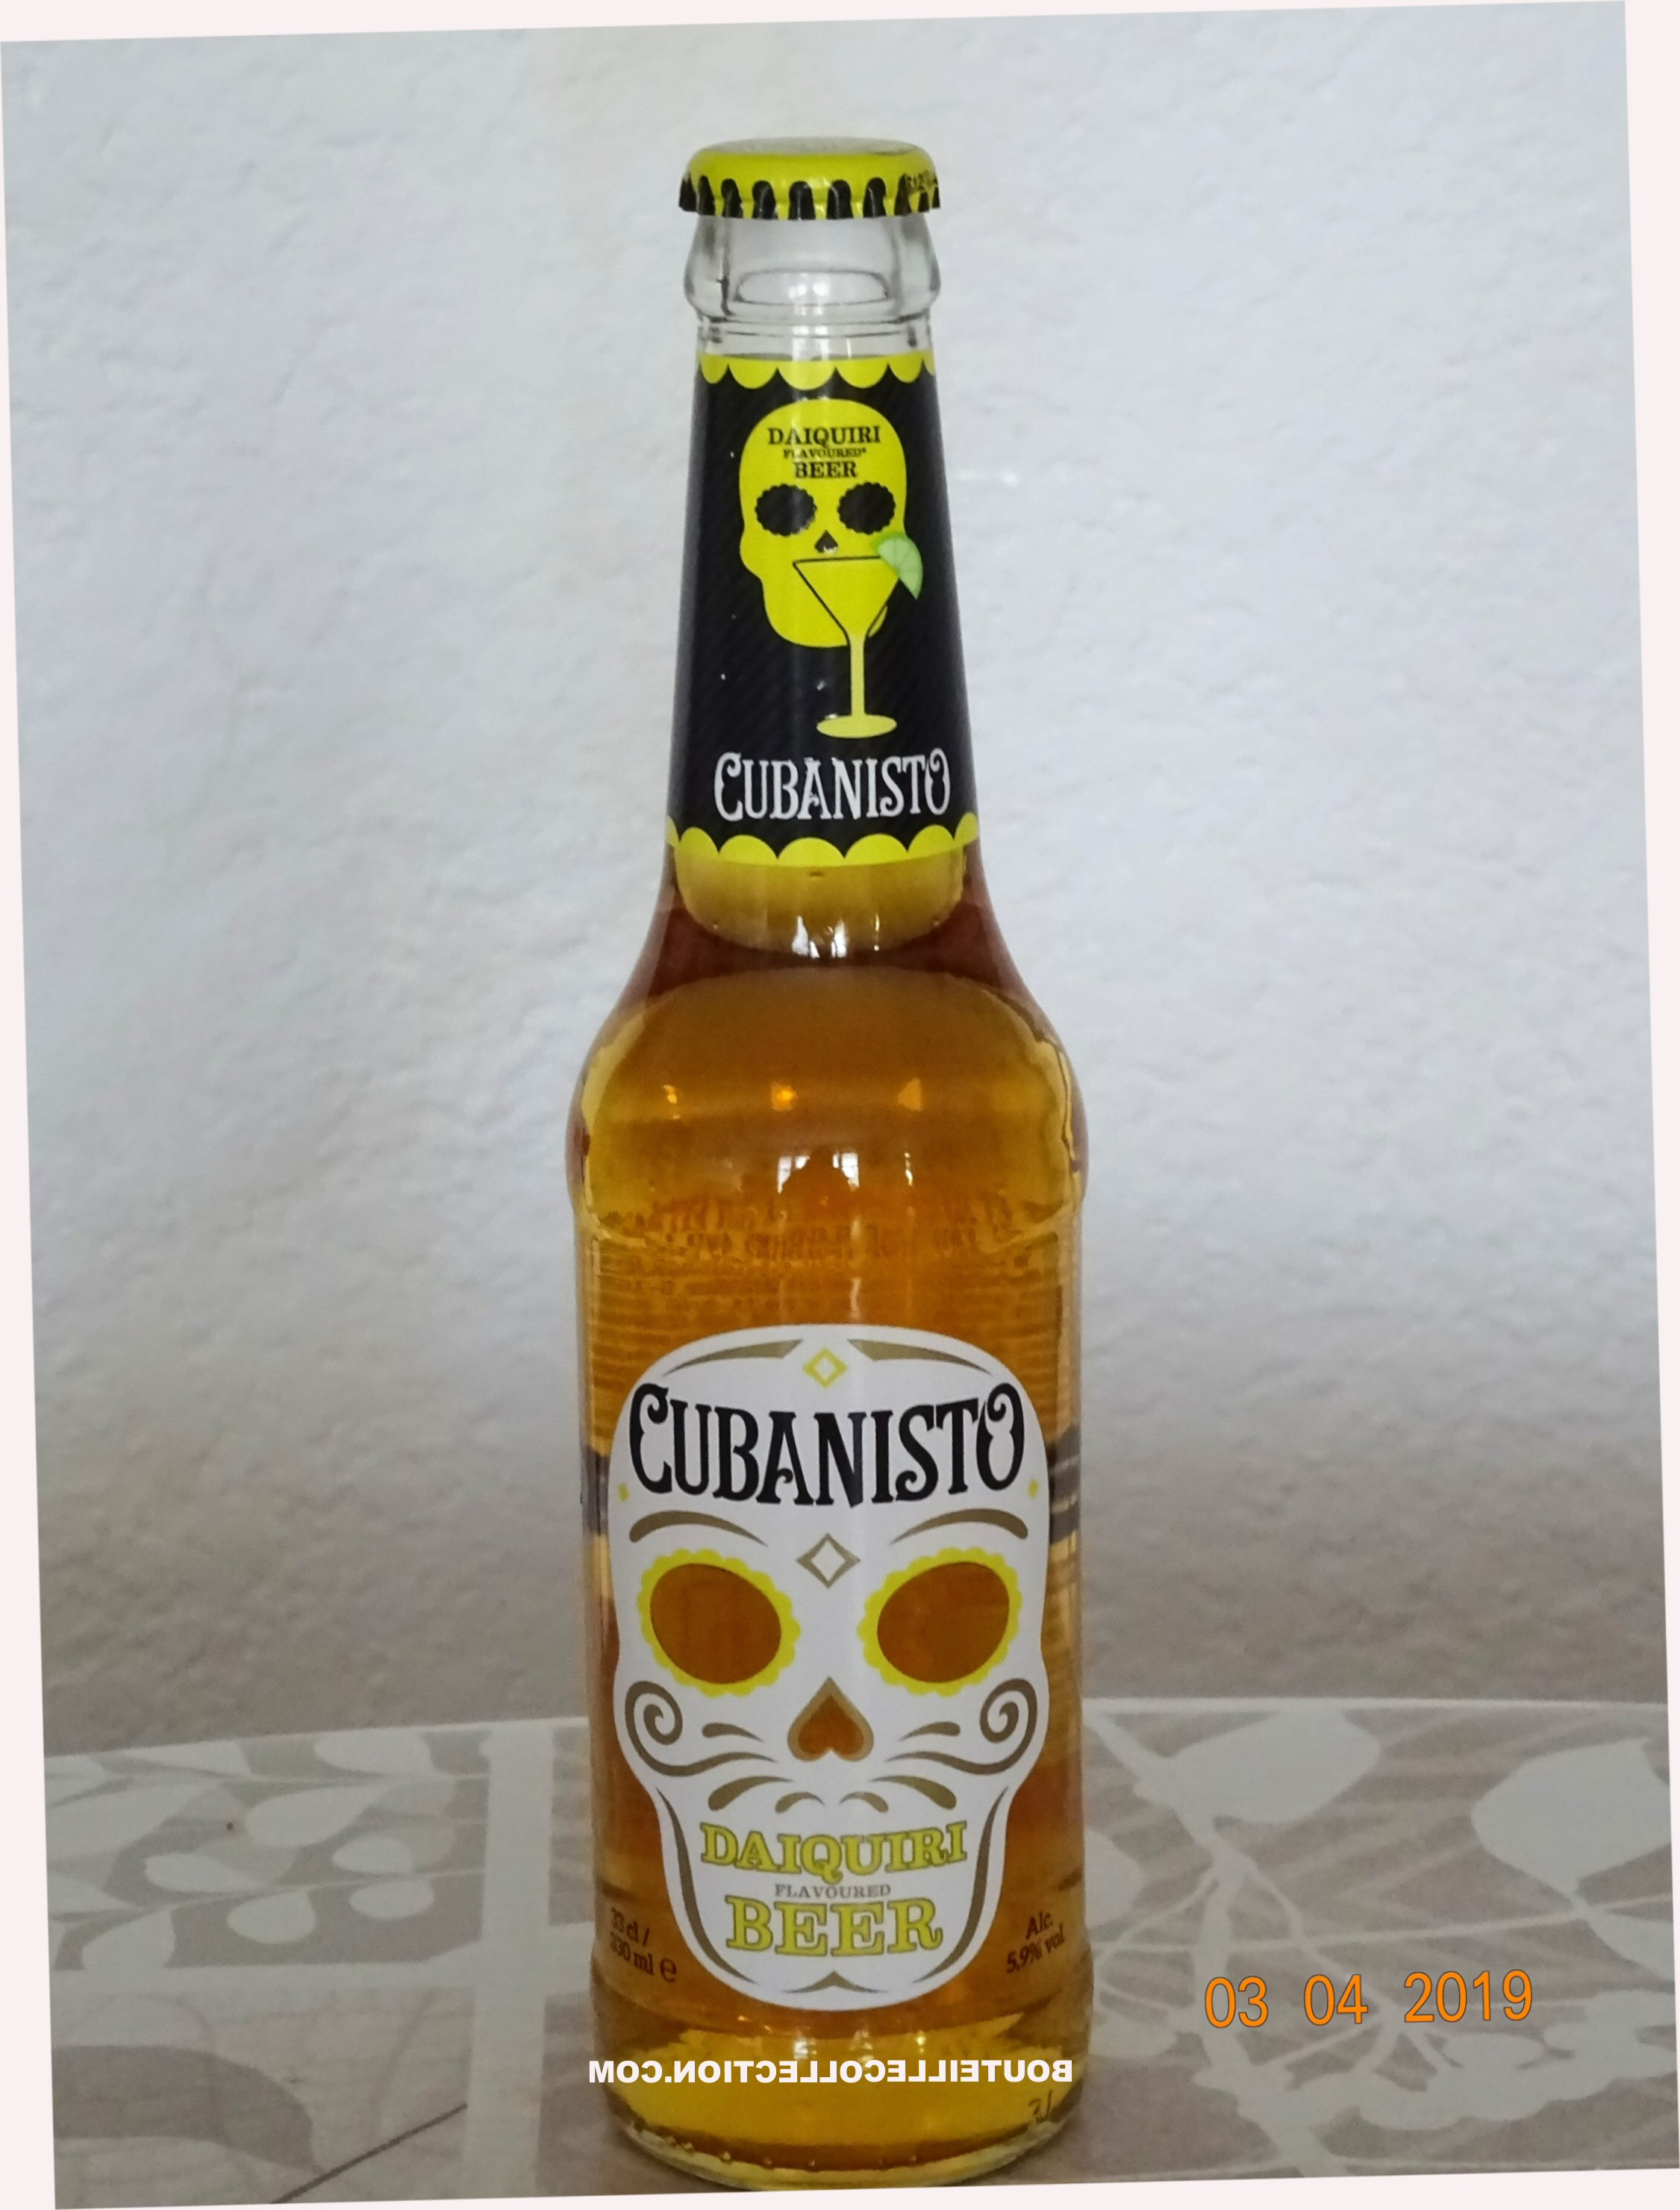 DAIQUIRI BEER 33CL AB  .JPG